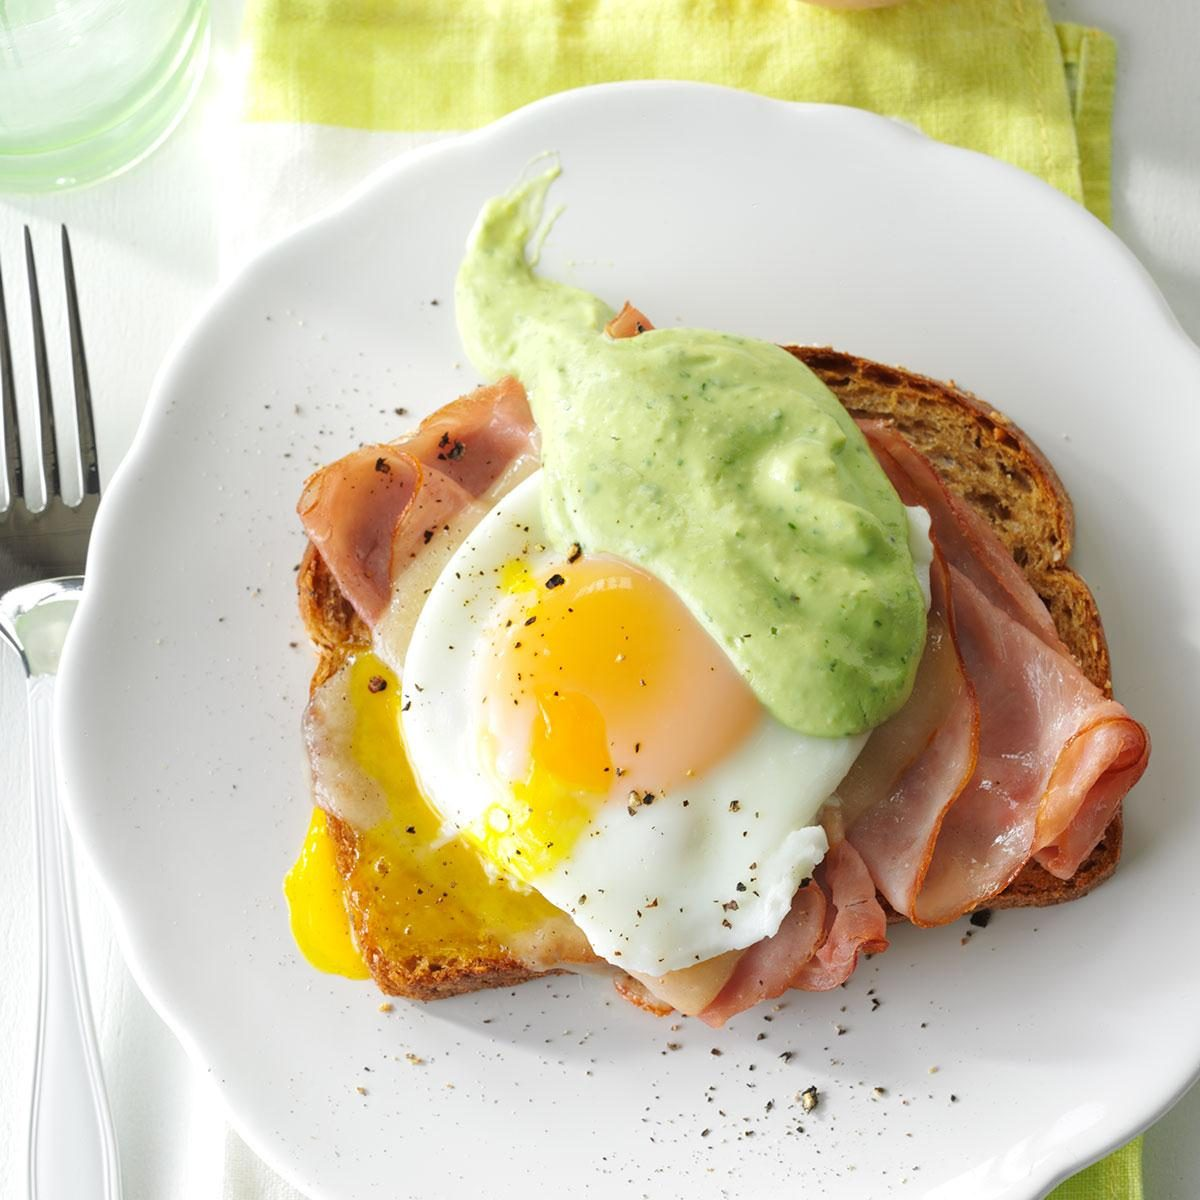 Southwestern Eggs Benedict with Avocado Sauce